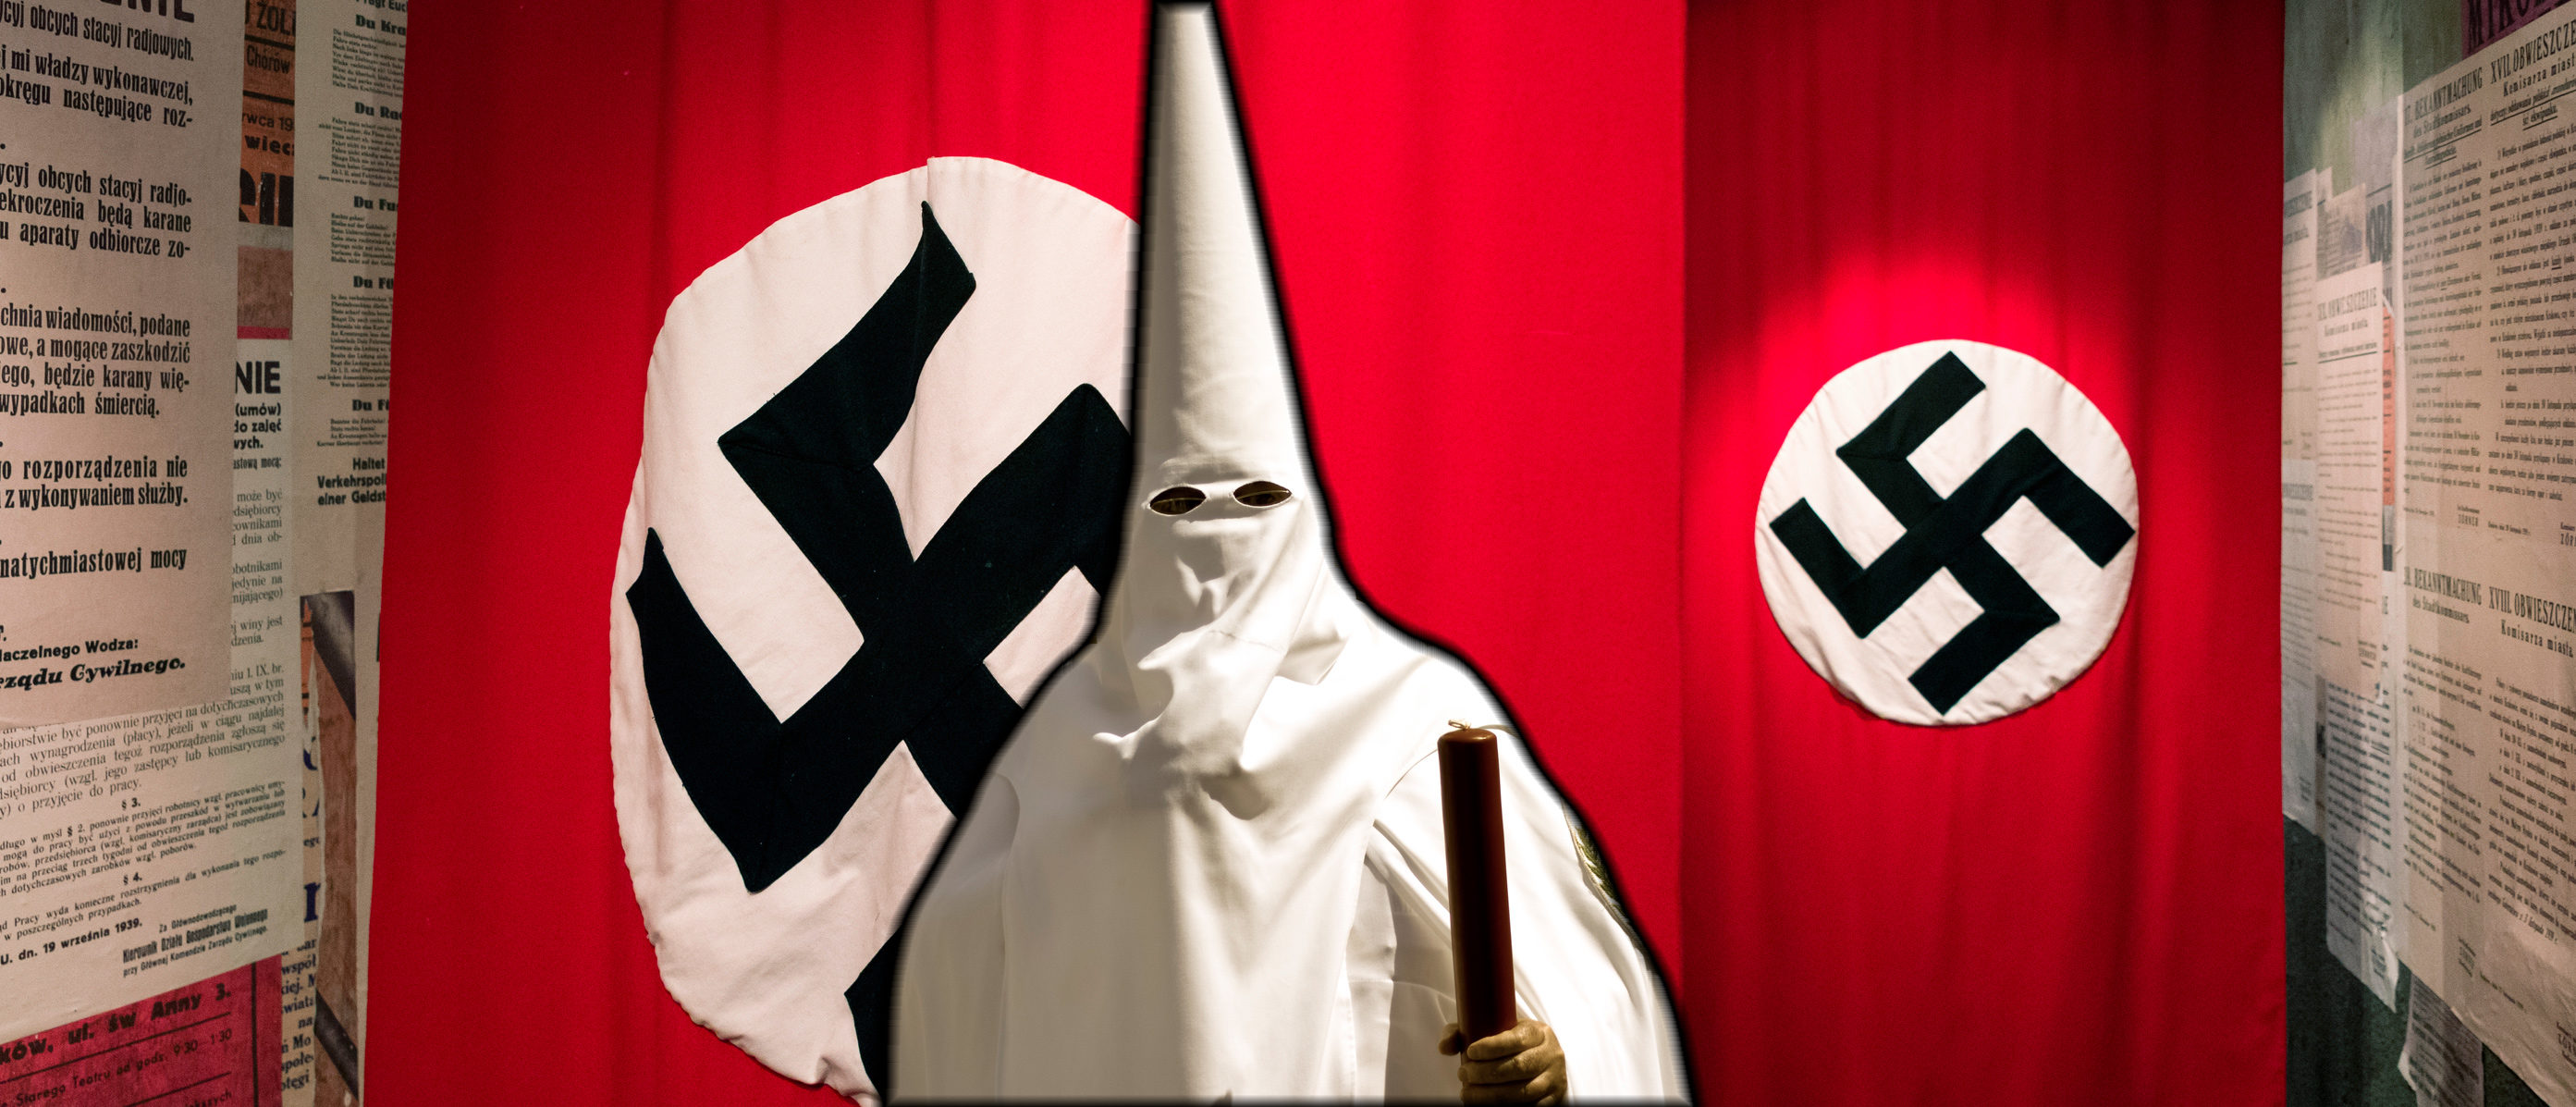 Amazon has ended the sale of any goods related to Nazis or the Ku Klux Klan such as swastikas and burning crosseson Thursday. Images: Shutterstock.com